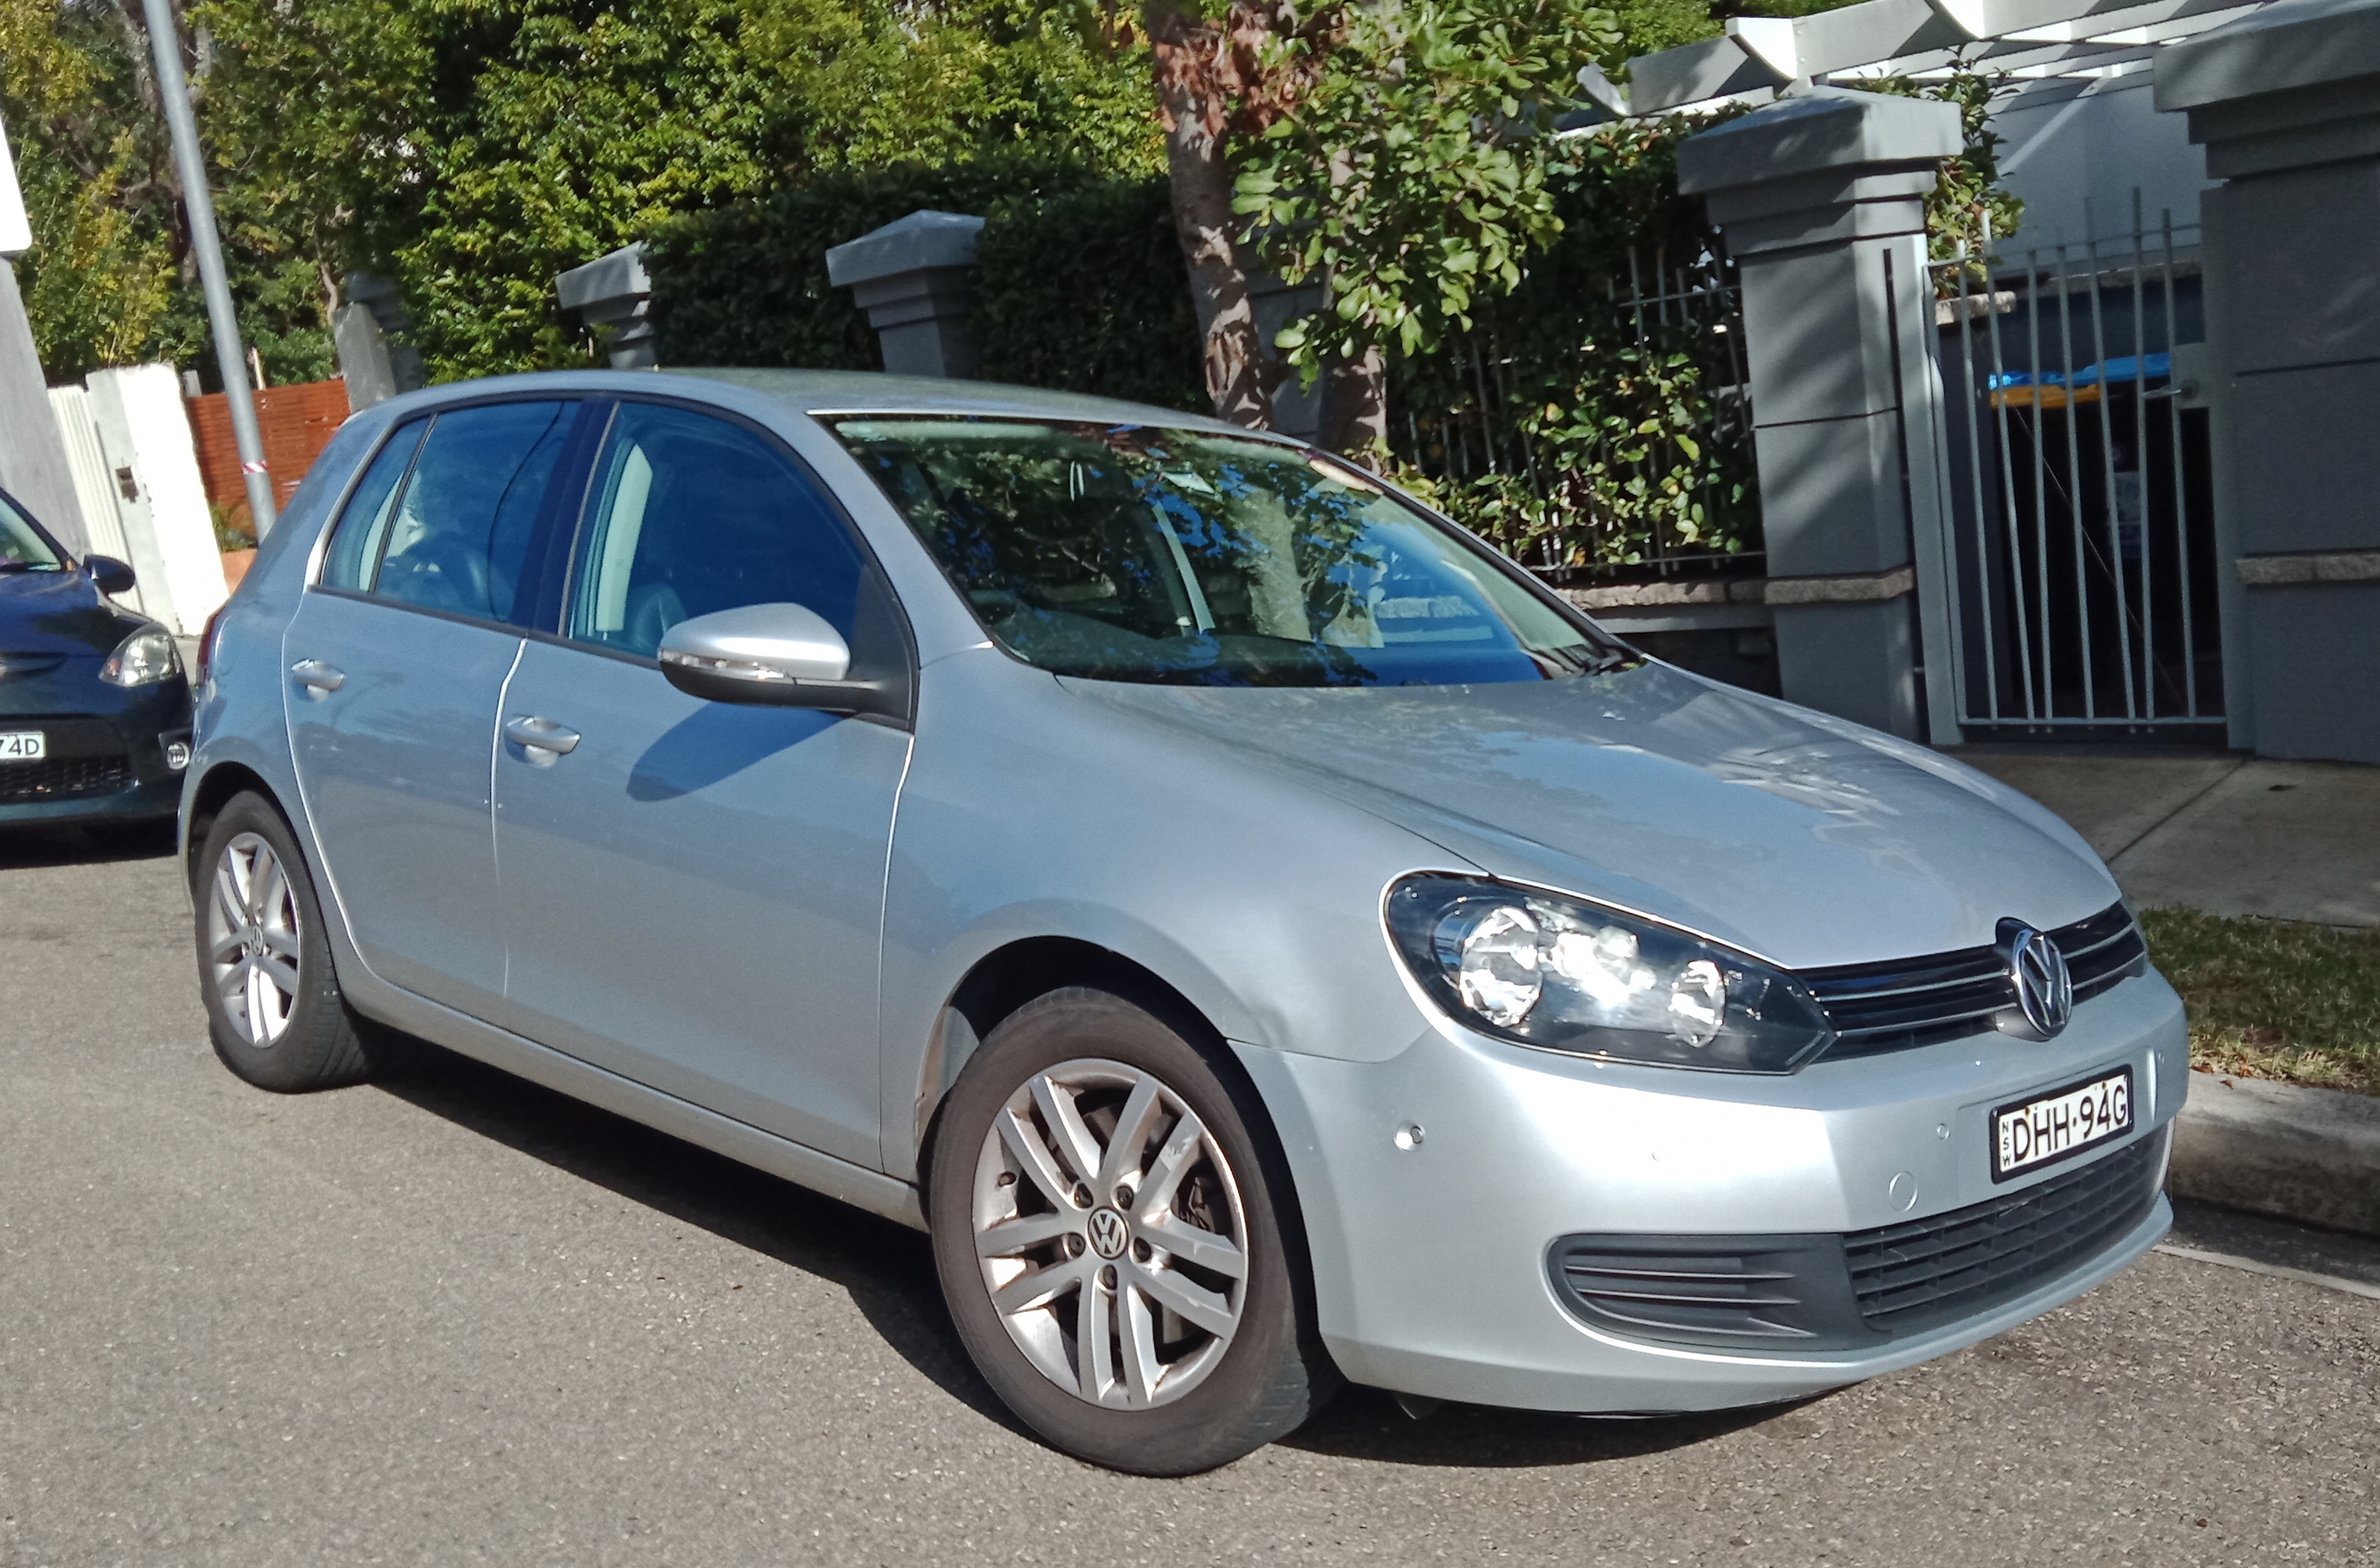 Picture of Mauricio's 2010 Volkswagen Golf